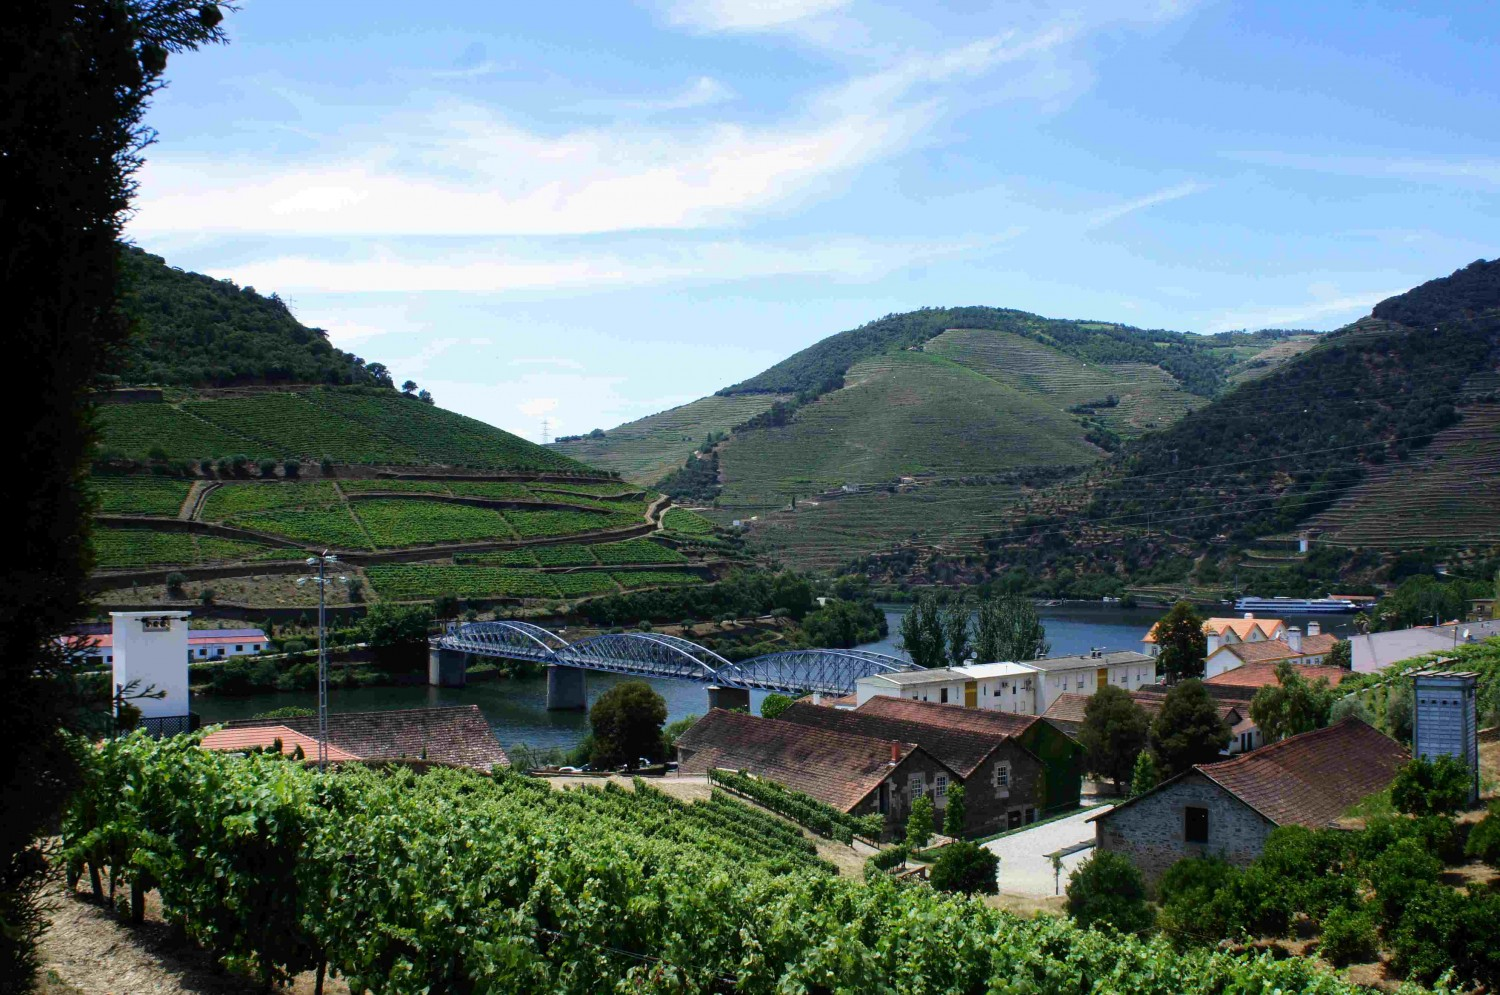 Looking back down Portugal's Douro Valley (the origin of Porto's delicious port wines) from Pinhão